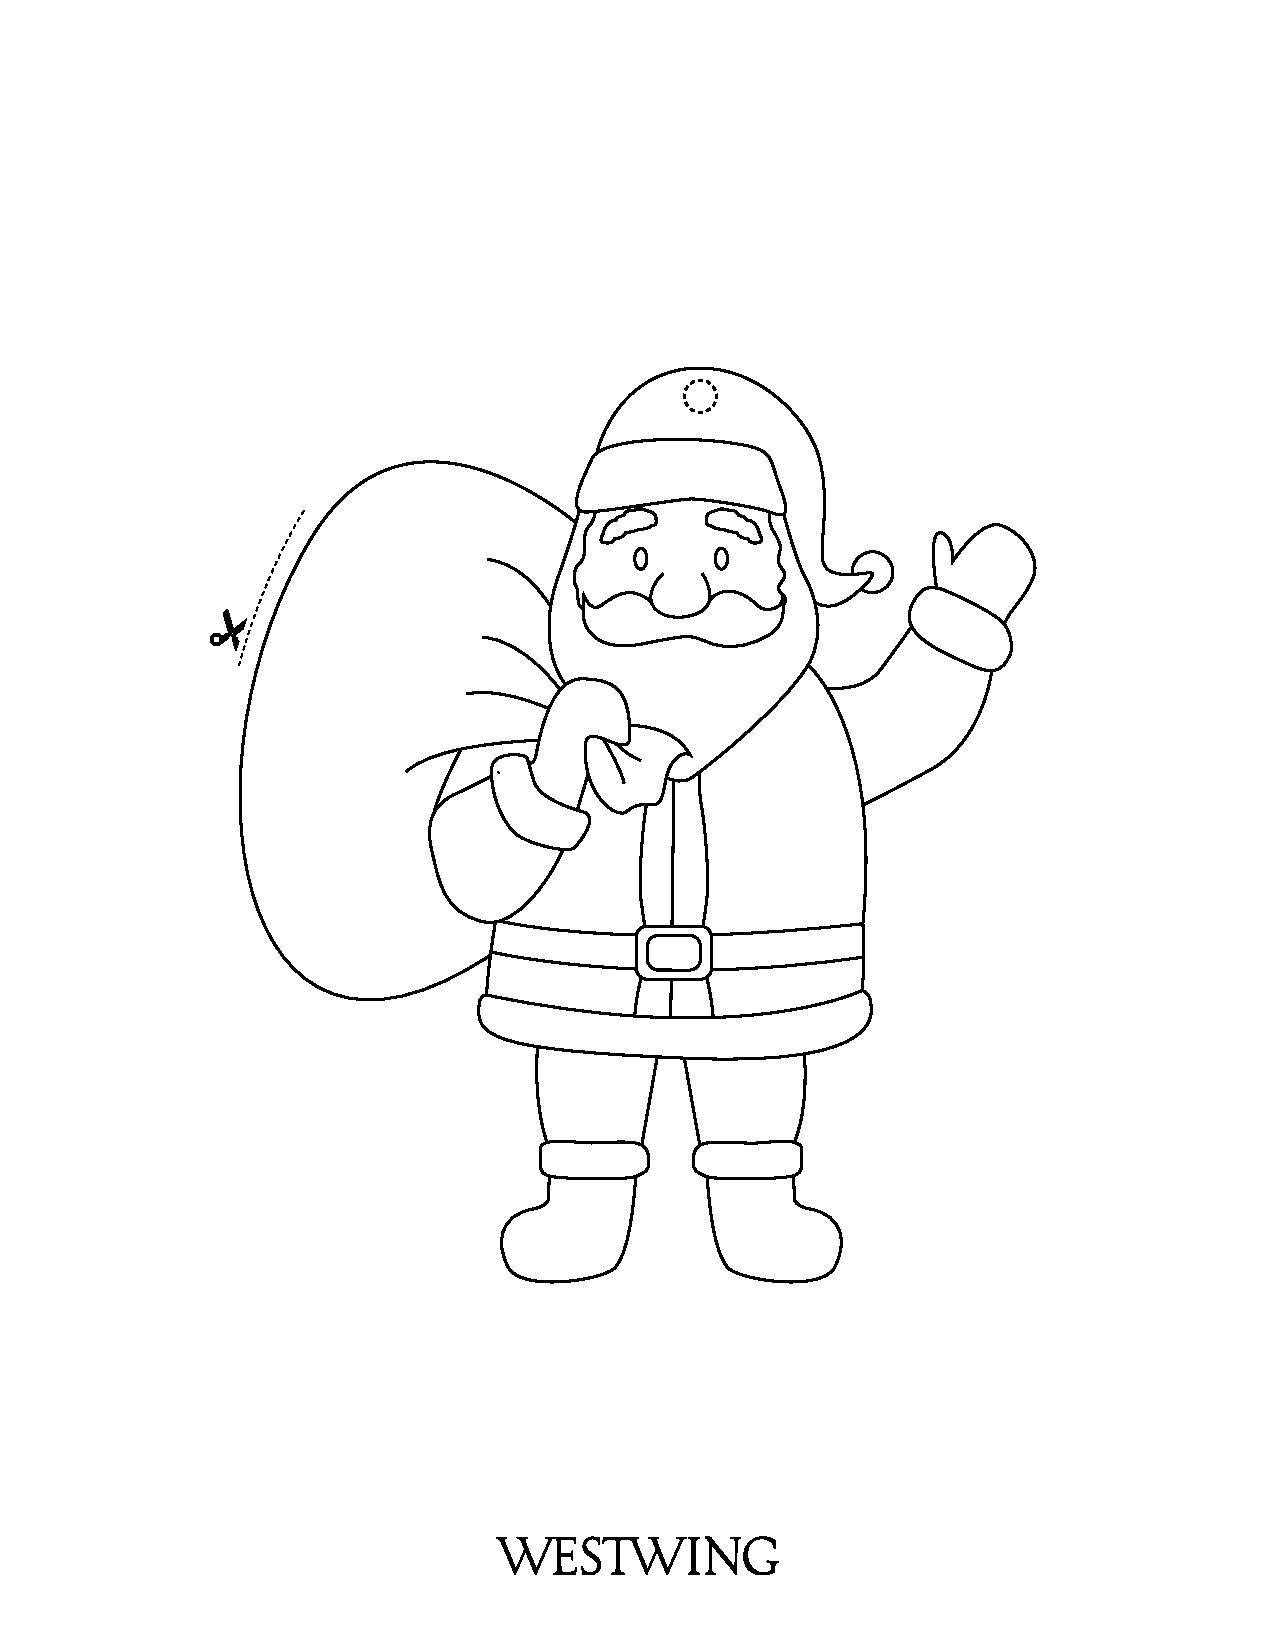 Easy free Santa Claus coloring page to download